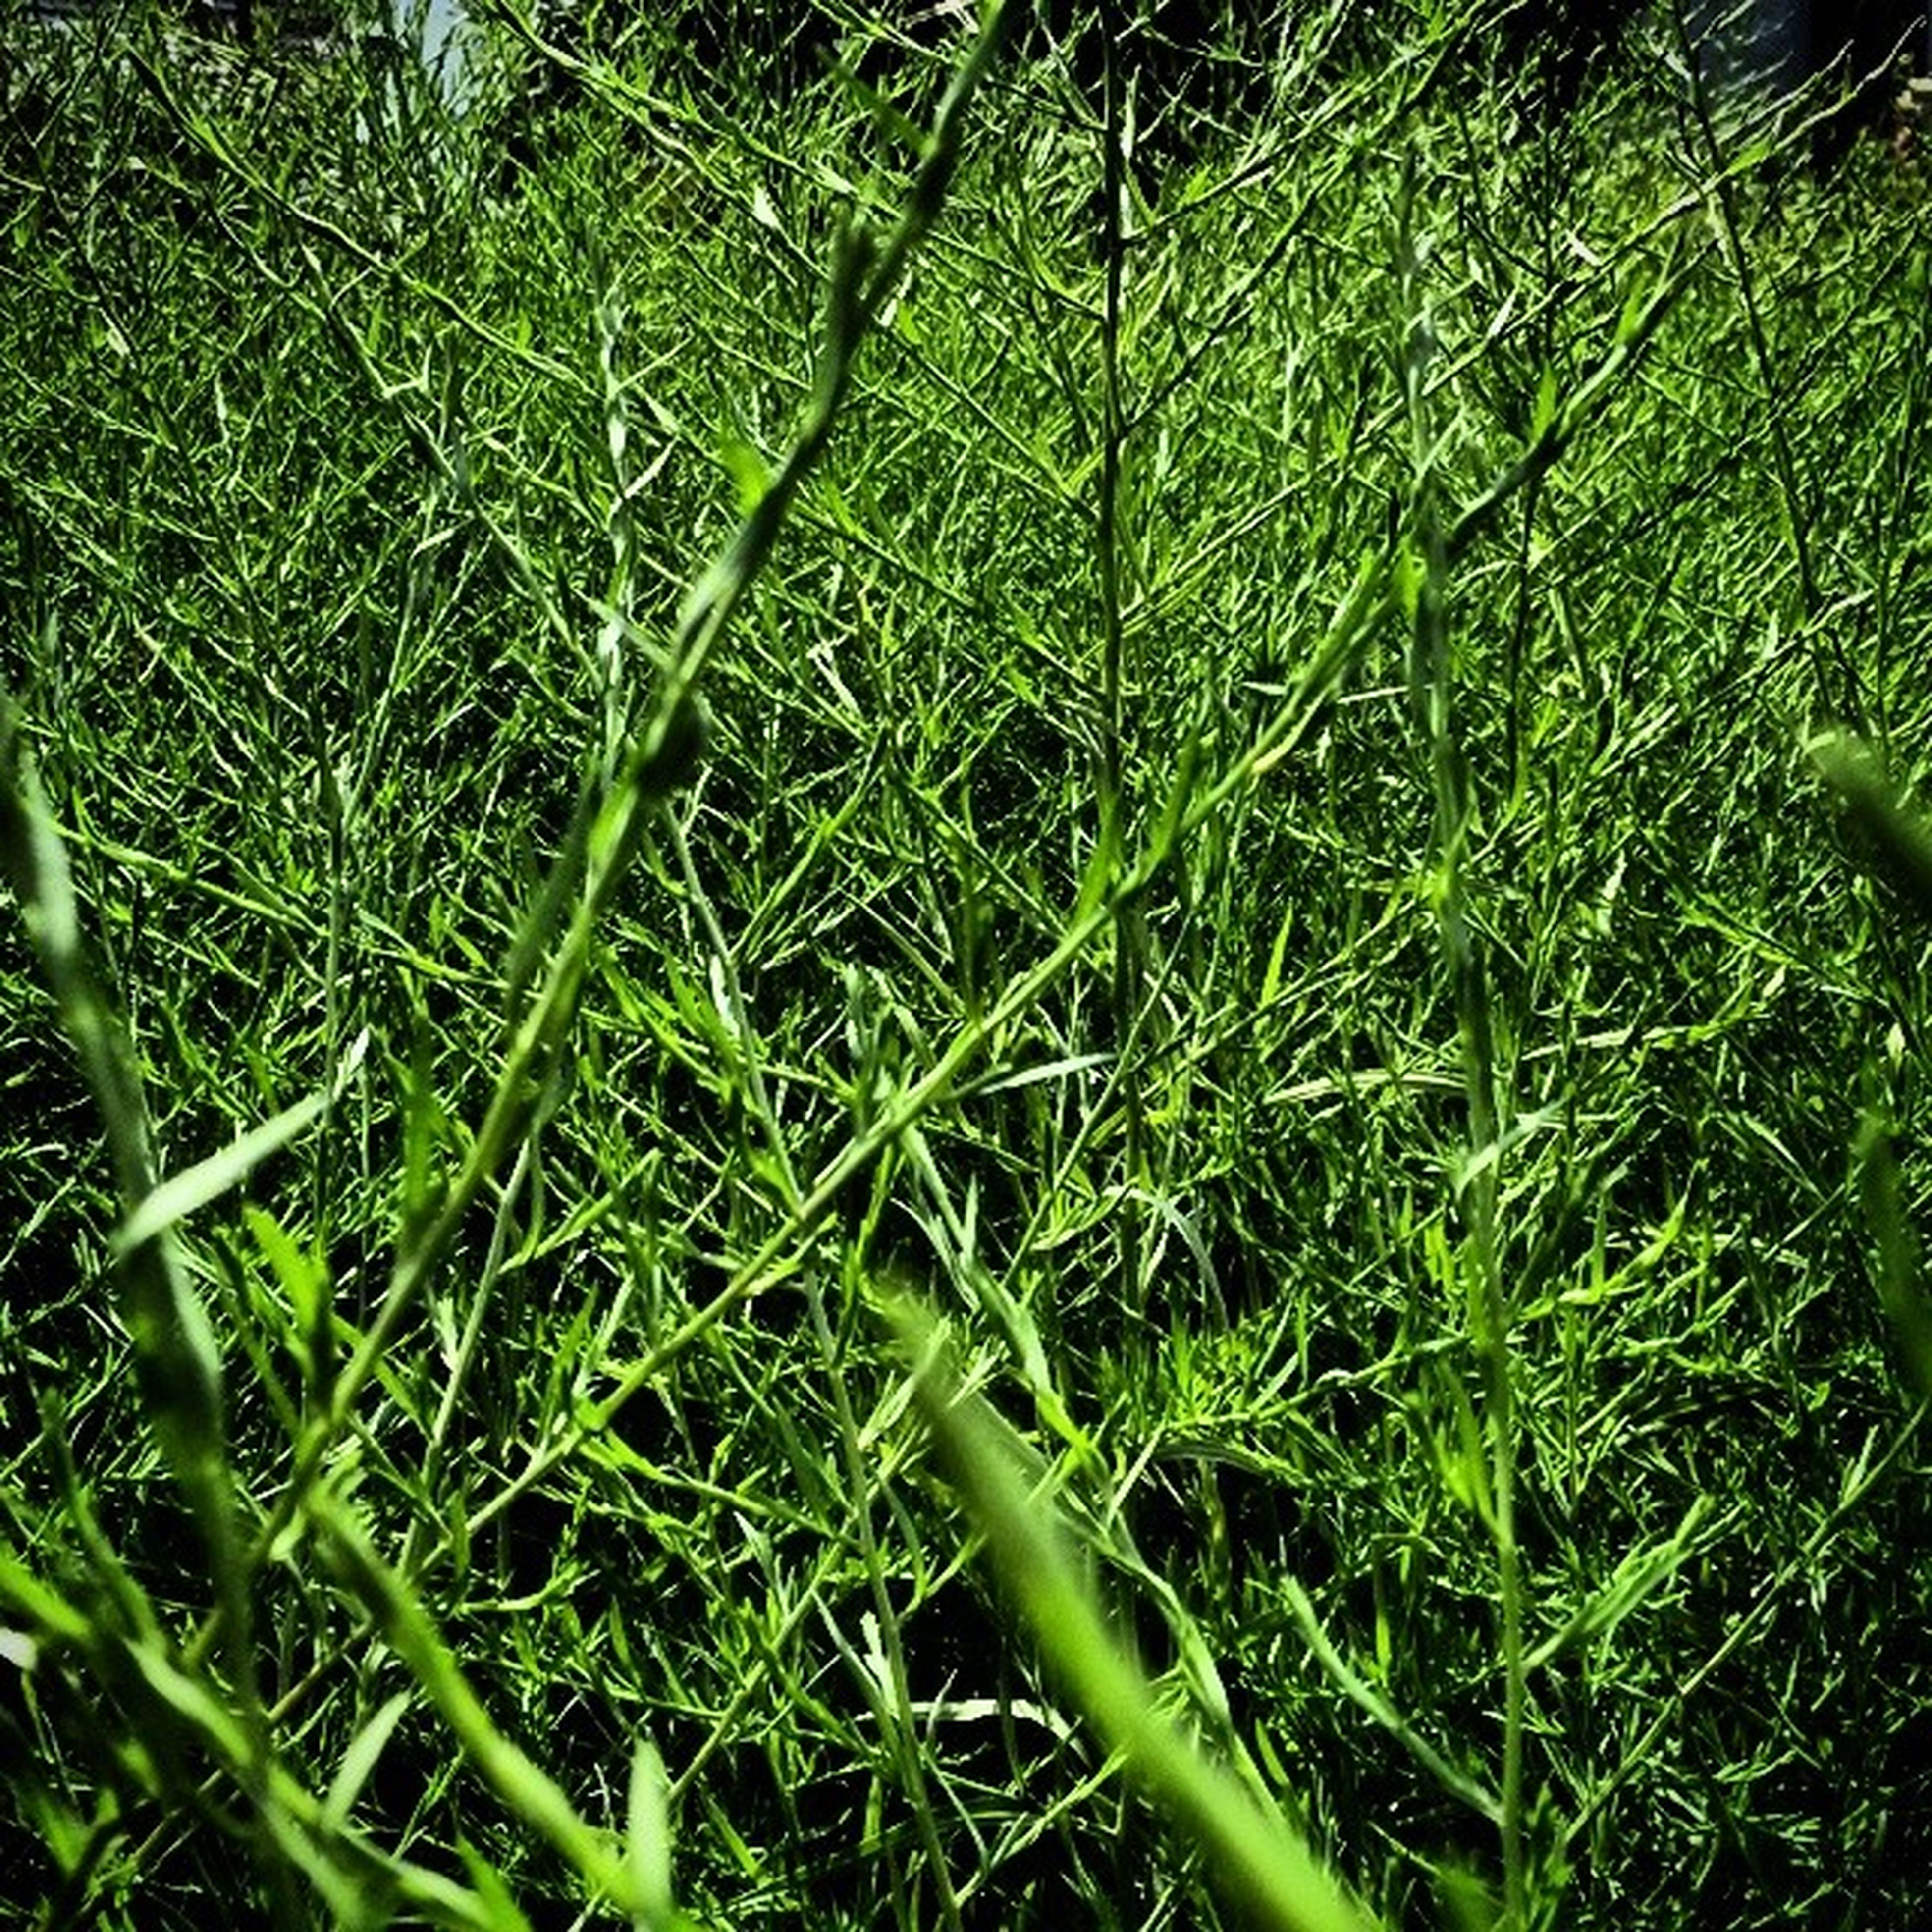 grass, green color, growth, nature, field, plant, beauty in nature, tranquility, blade of grass, close-up, grassy, full frame, green, backgrounds, lush foliage, freshness, outdoors, no people, day, growing